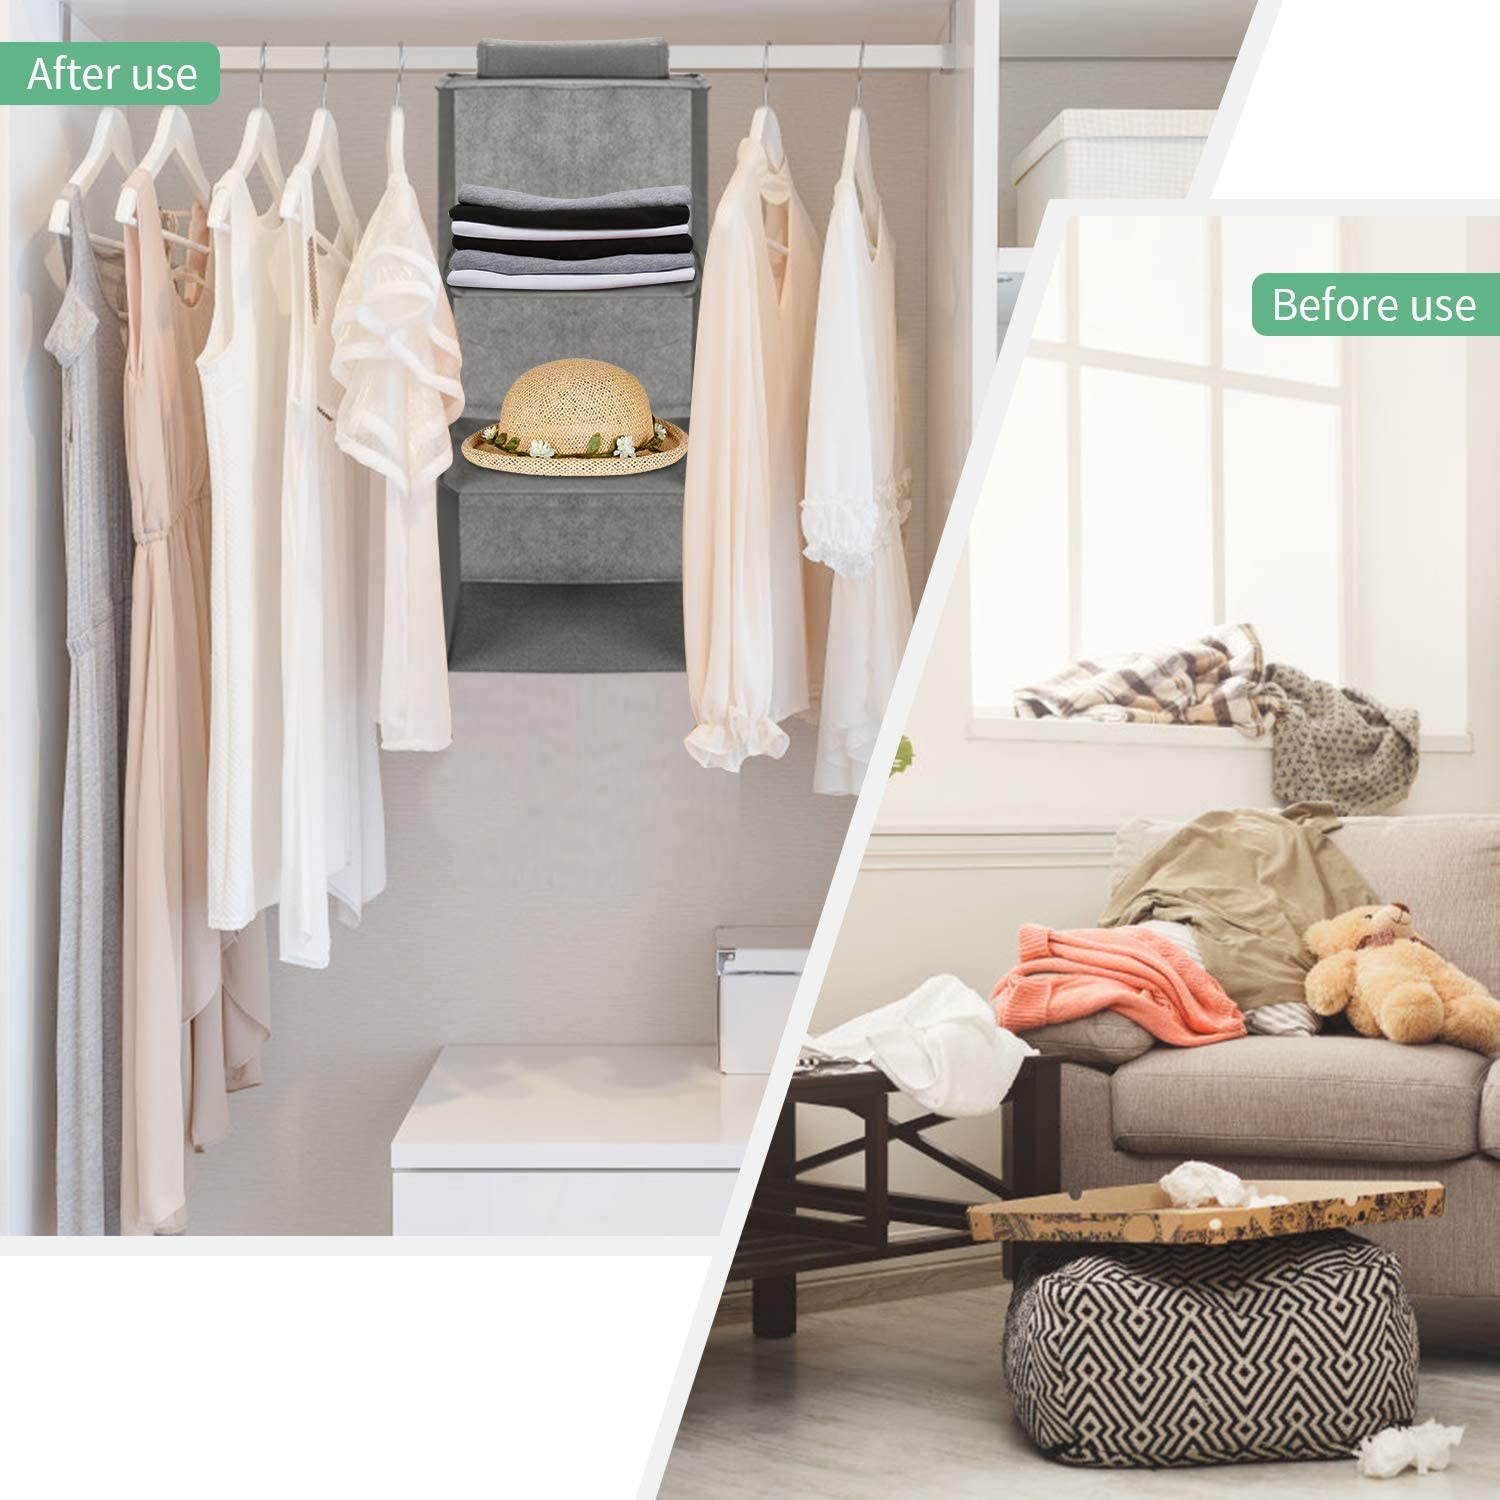 Collapsible Closet Hanging Shelves for Storage Clothes 3 Shelf Hanging Shelves with a Hook and Loops Bra Pants ZANBO Hanging Closet Organizer Sock and More